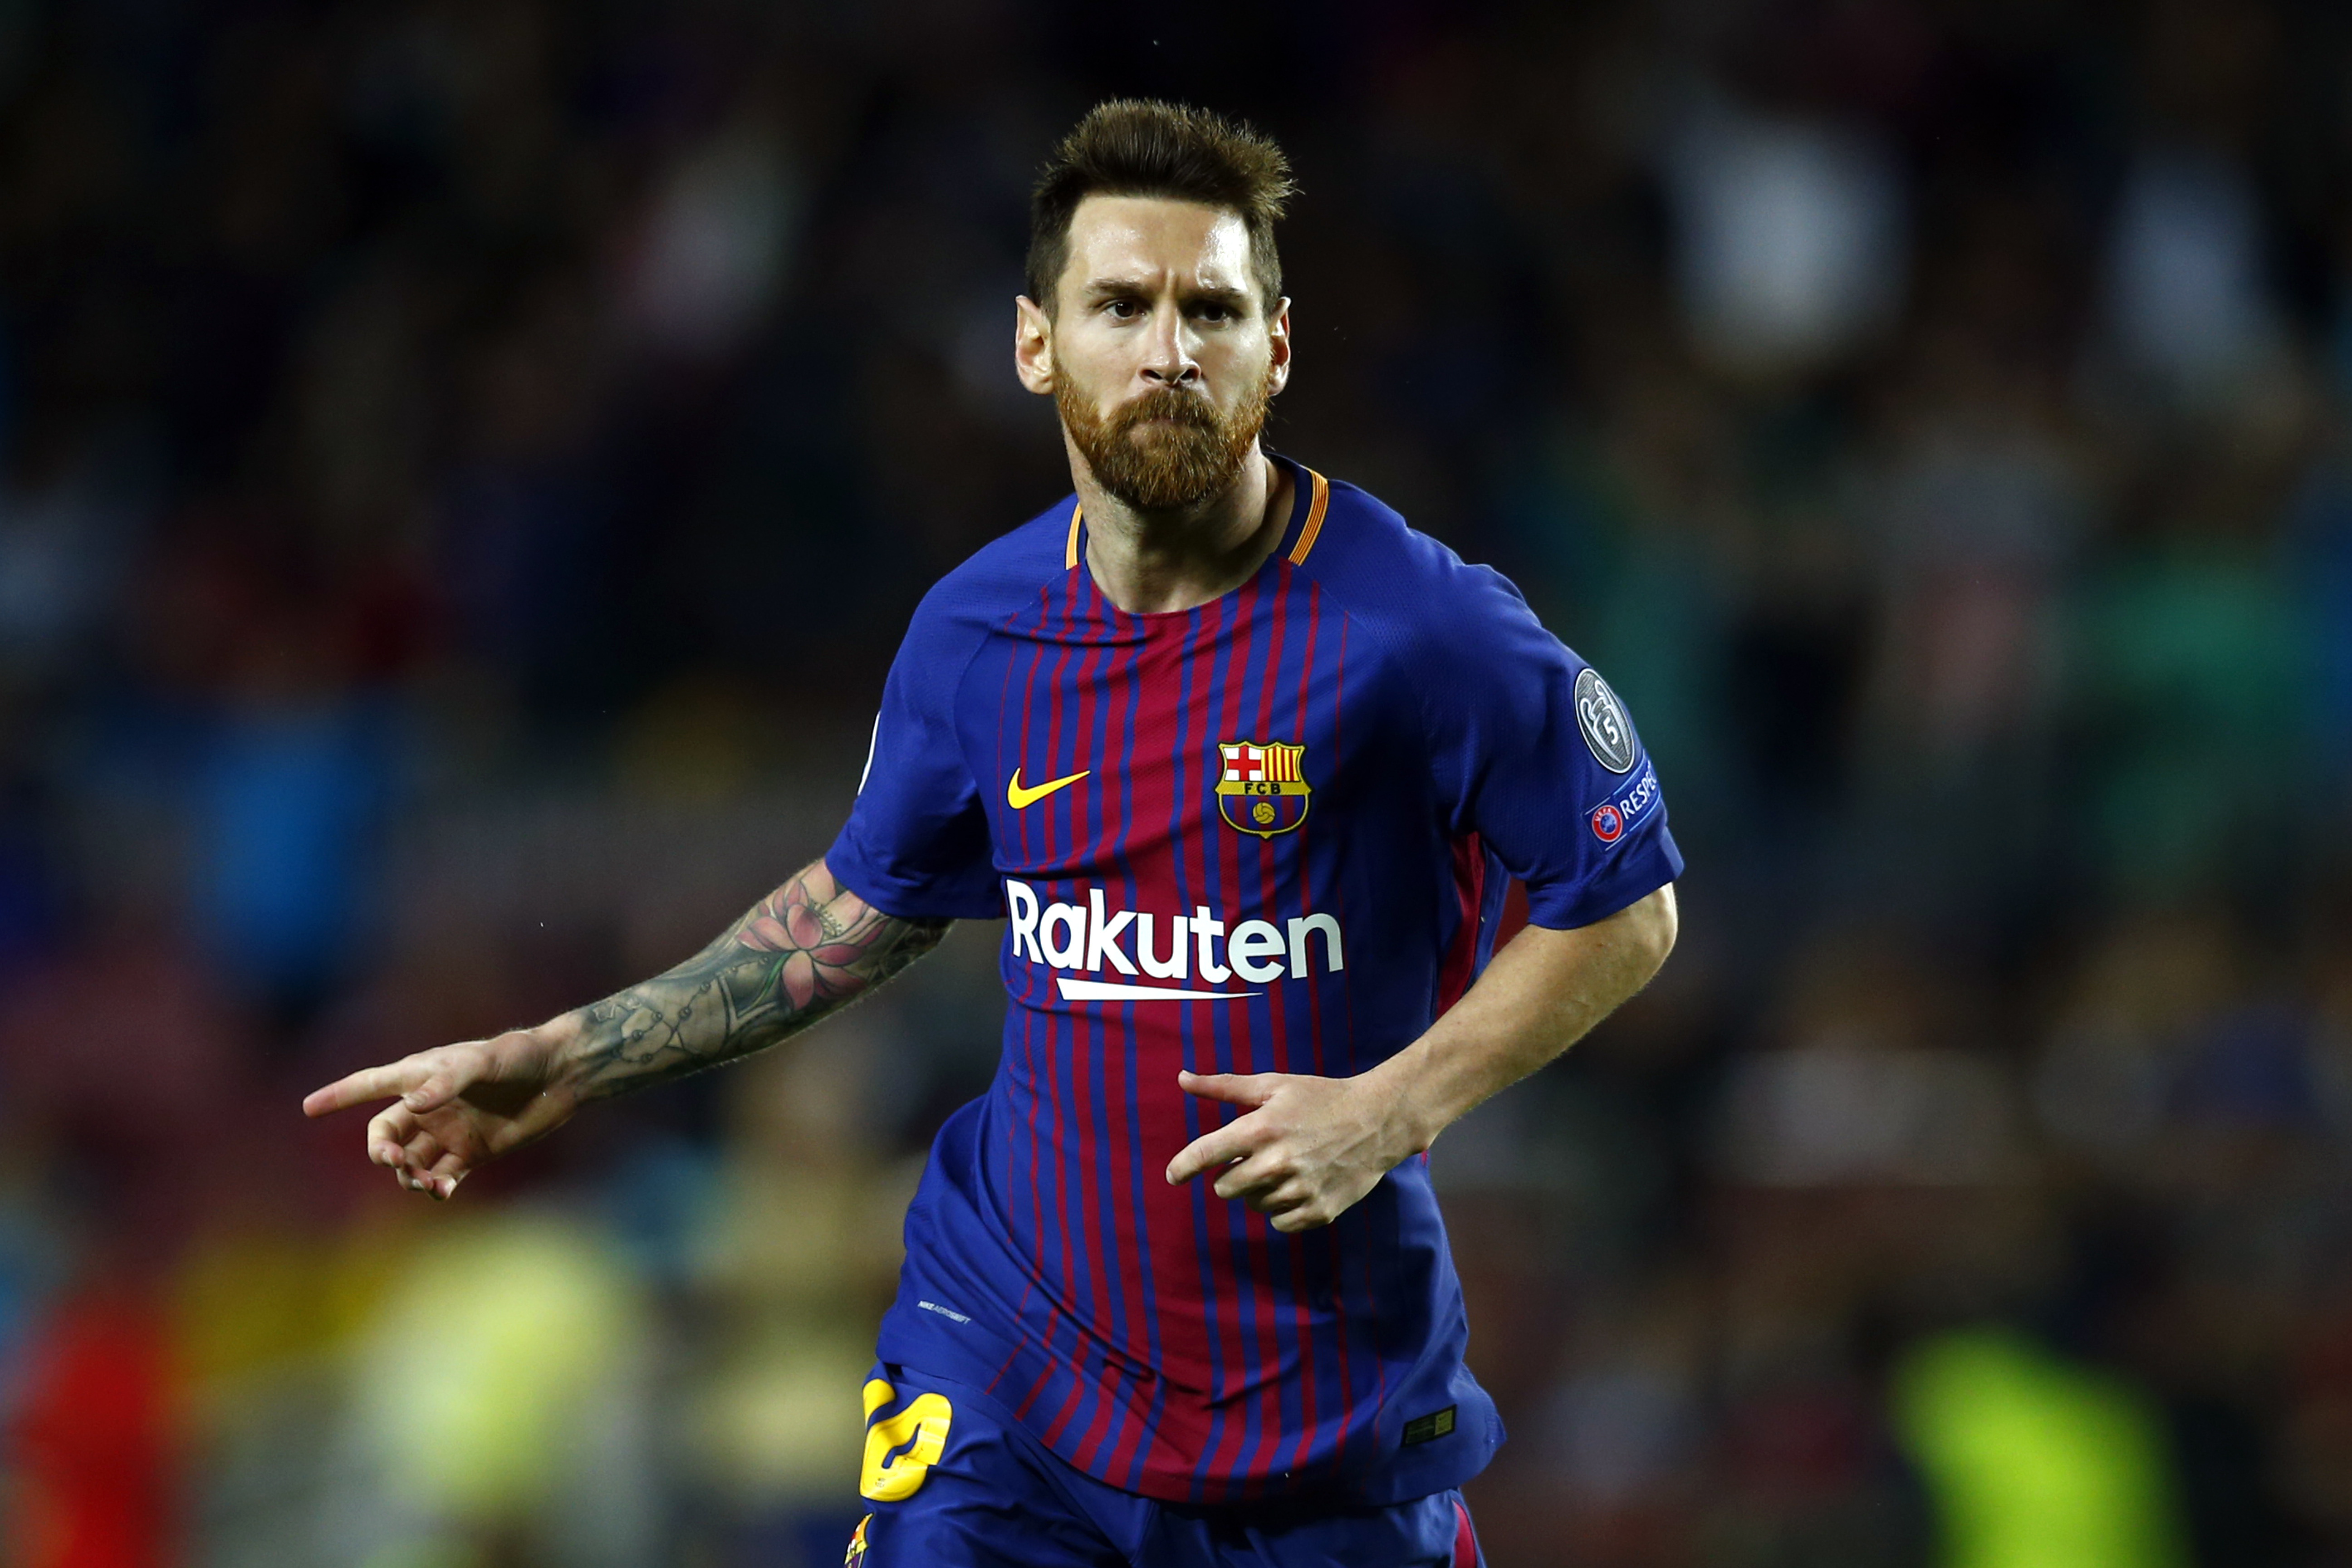 Lionel Messi Reaches 100 European Goals After Free Kick Against